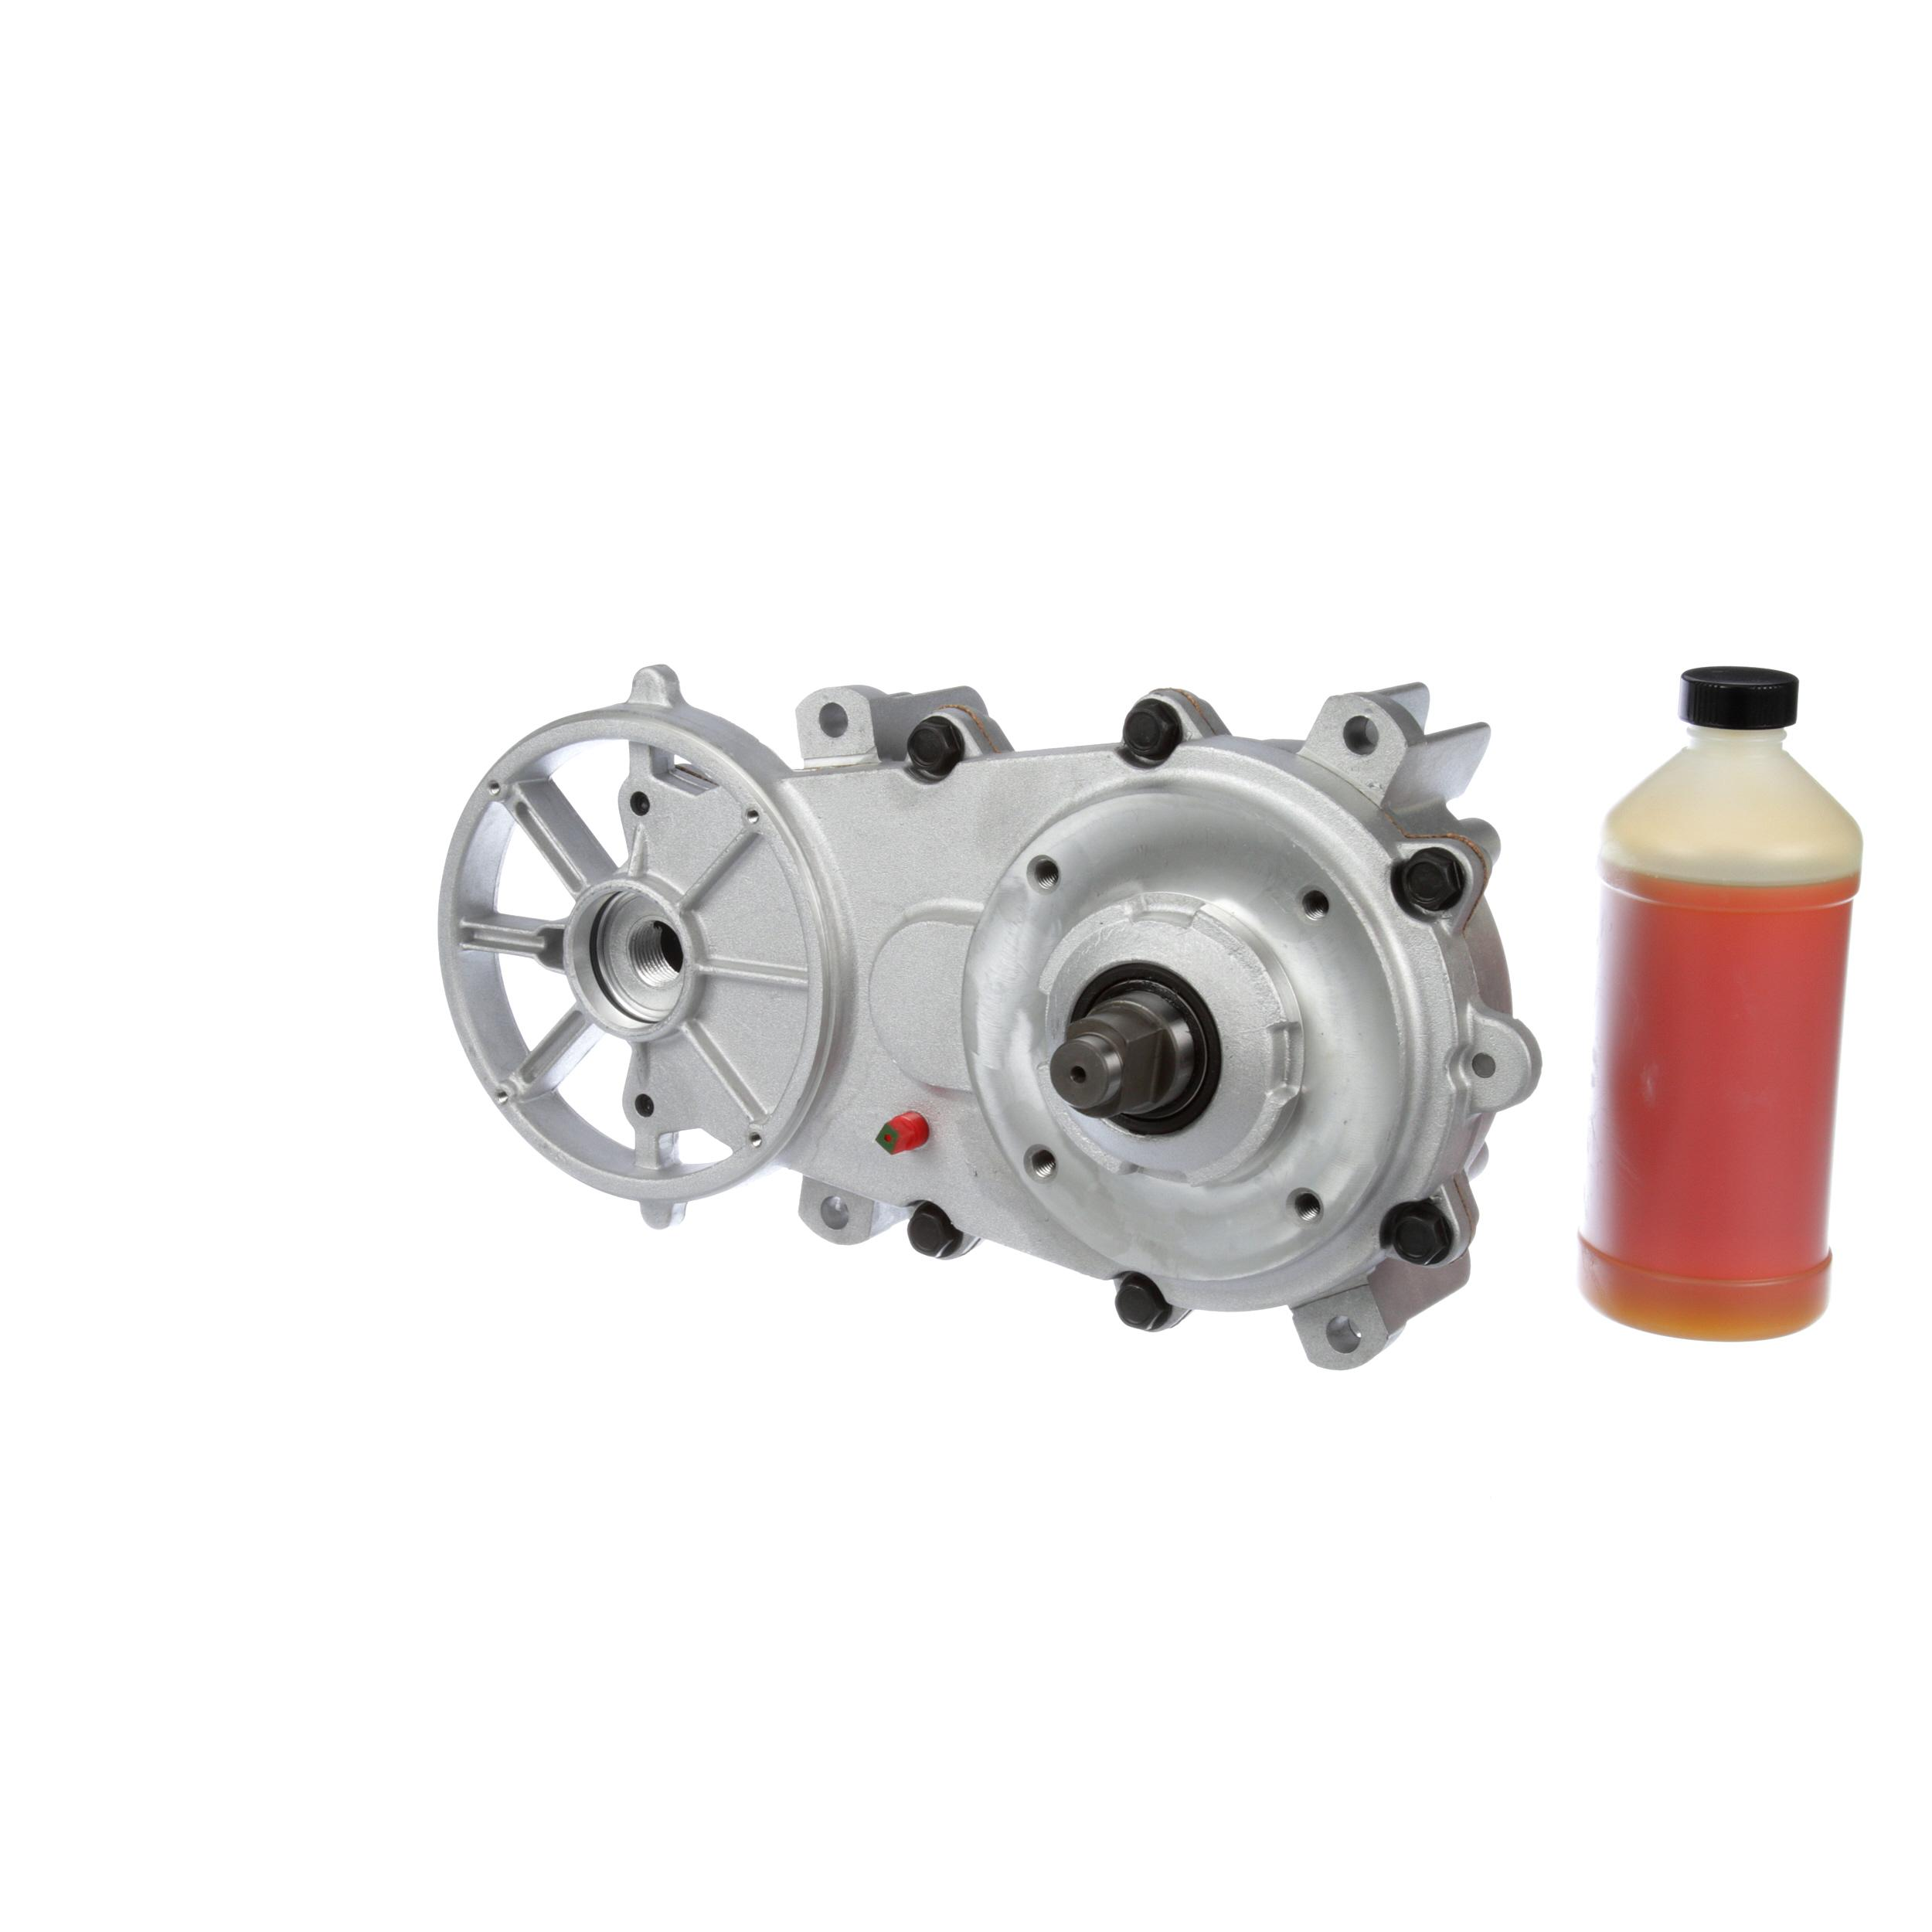 SCOTSMAN GEARCASE KIT, NO MOTOR